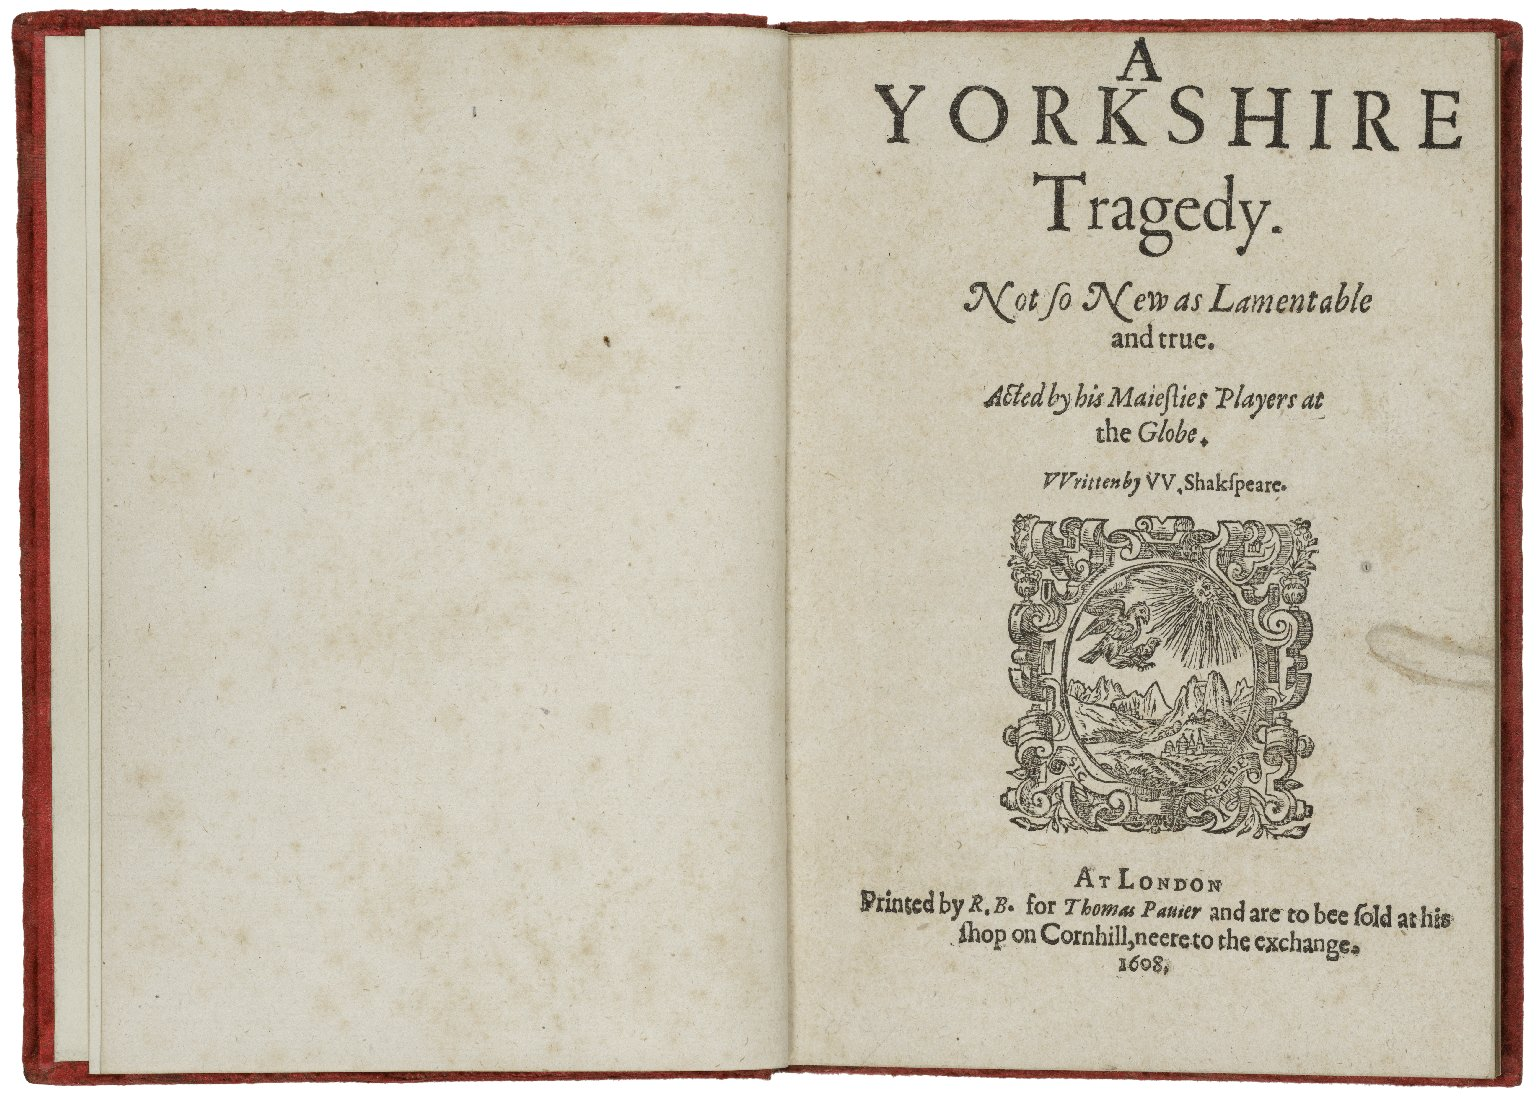 A Yorkshire tragedy. Not so new as lamentable and true. Acted by his Maiesties Players at the Globe. VVritten by VV. Shakspeare.